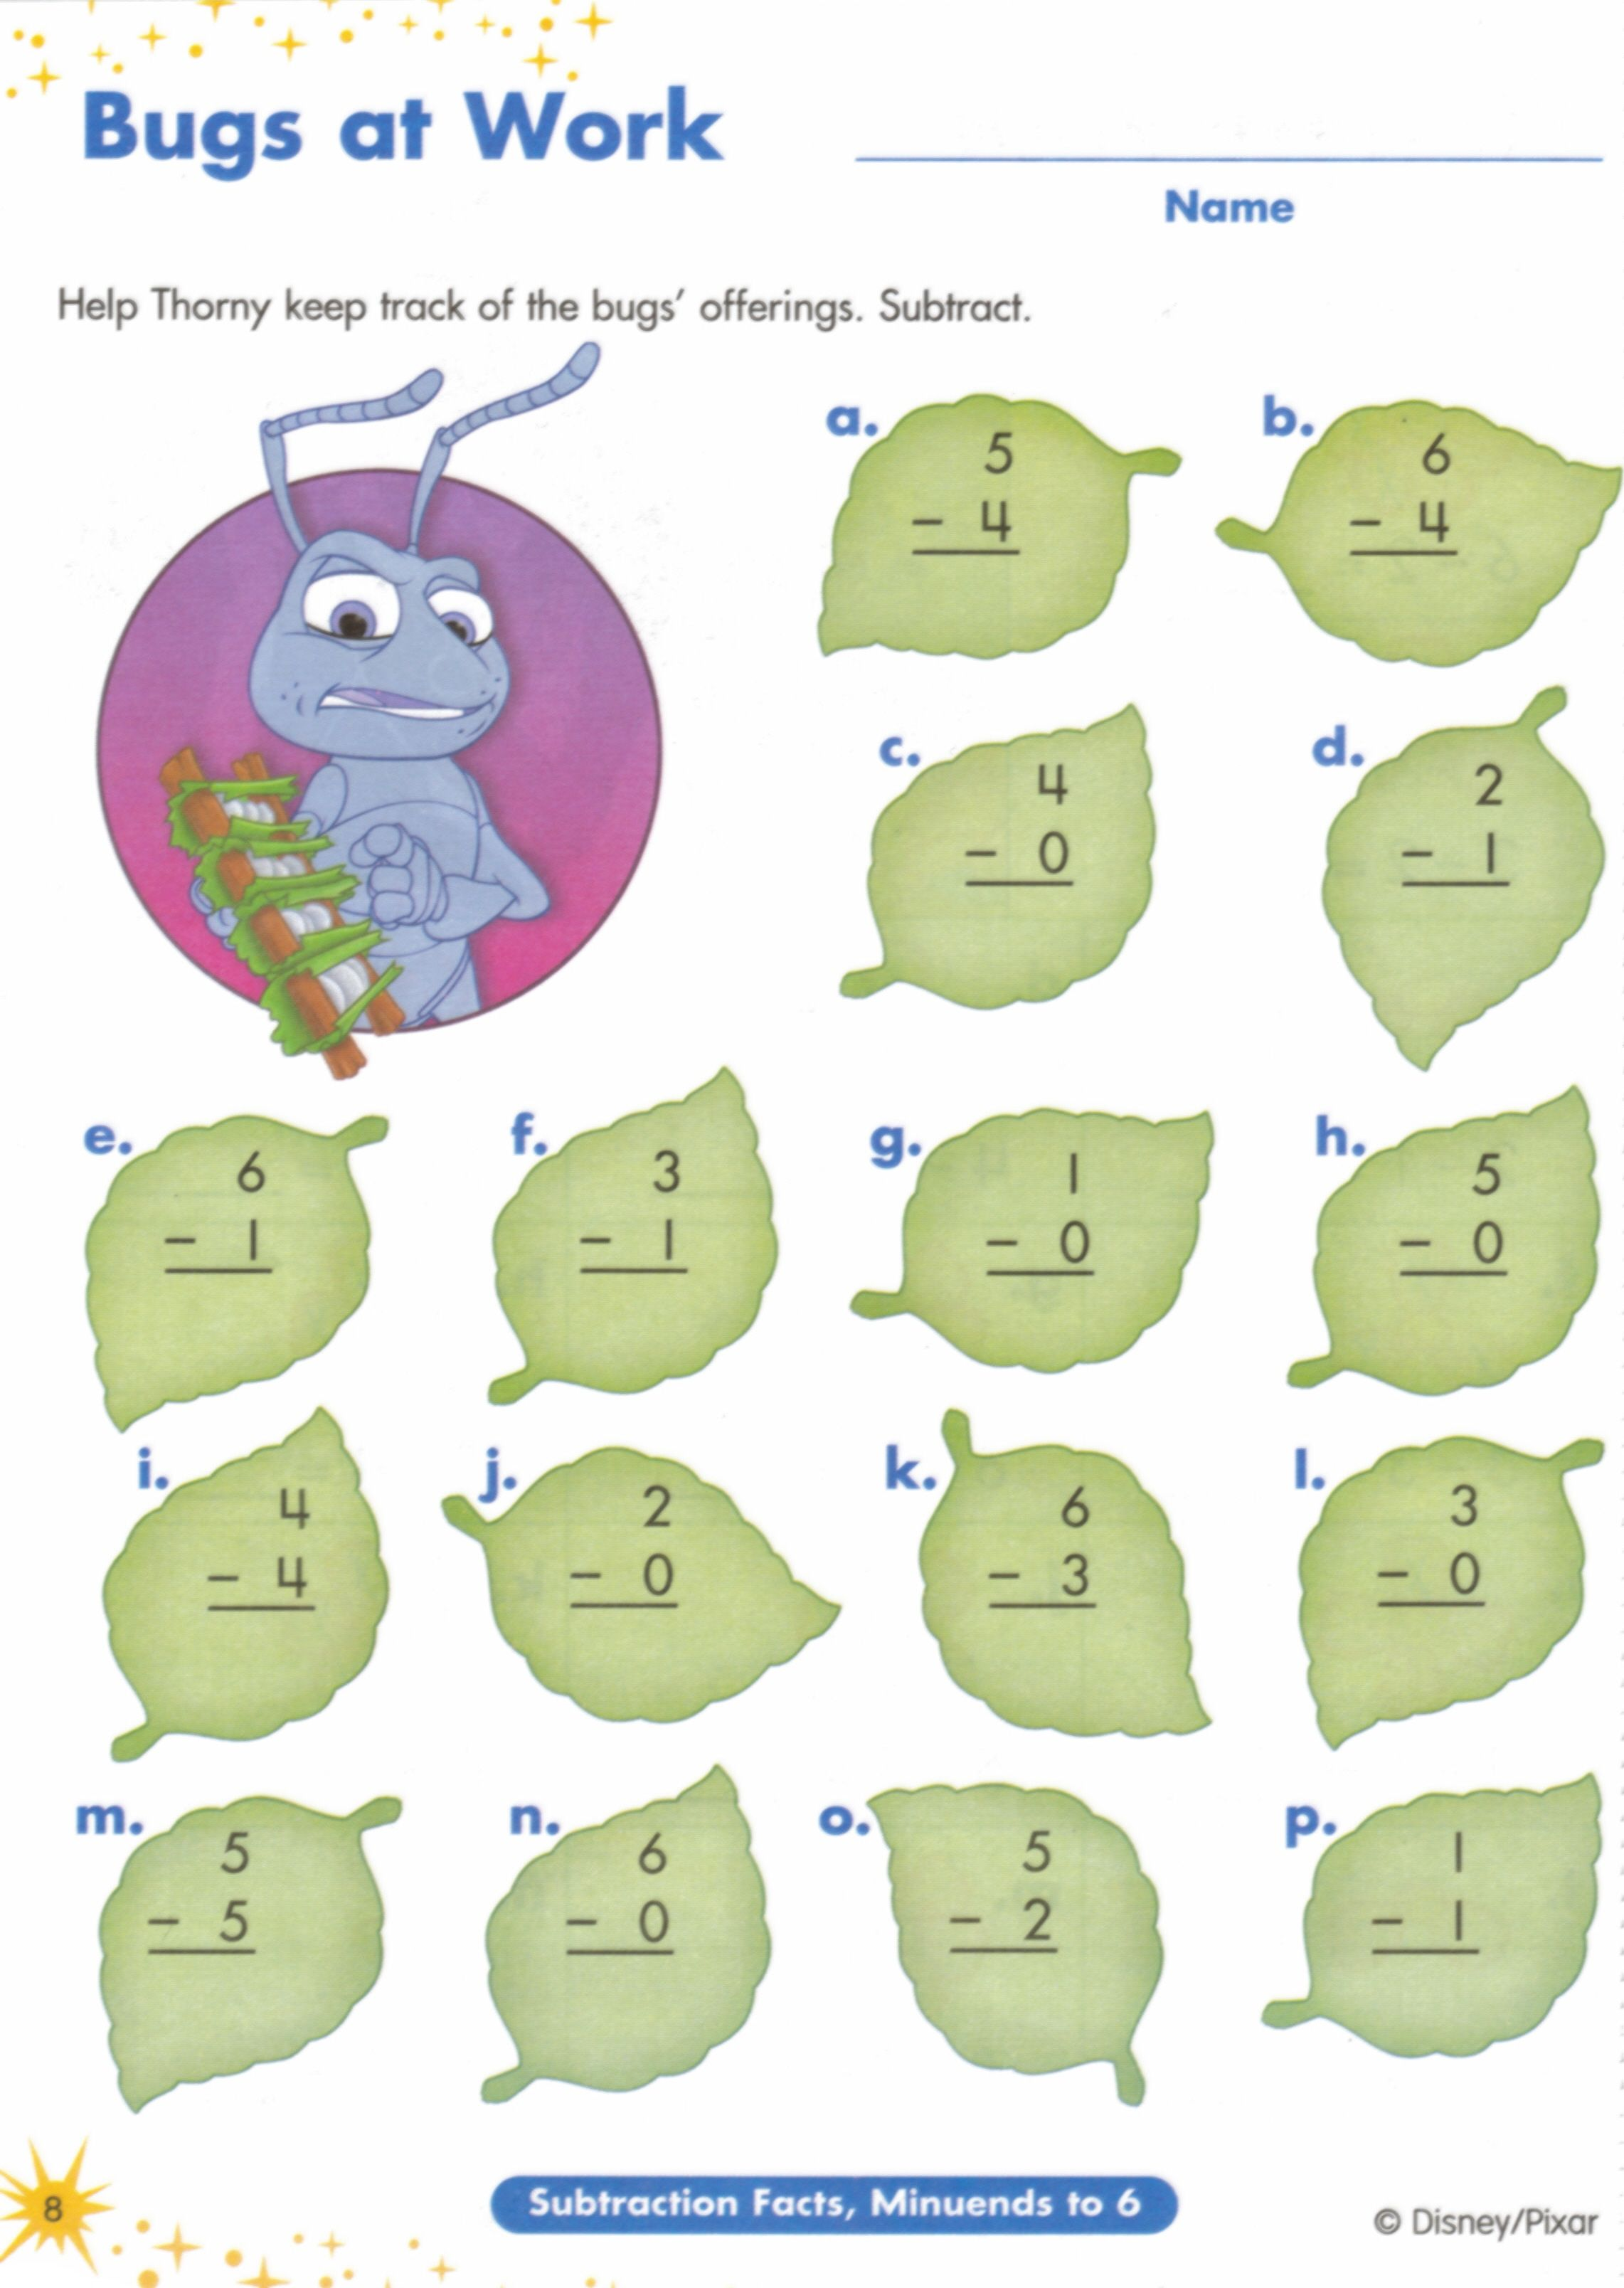 Proatmealus  Wonderful  Images About Worksheets On Pinterest  Fun Facts For Kids  With Exciting  Images About Worksheets On Pinterest  Fun Facts For Kids Earth Day Worksheets And Jungles With Archaic Year  English Worksheets Uk Also Pronoun Worksheets Th Grade In Addition Comparing And Ordering Integers Worksheet And Math Worksheet St Grade As Well As Worksheets For Adding Fractions Additionally Cycles Worksheet Carbon Cycle Answers From Pinterestcom With Proatmealus  Exciting  Images About Worksheets On Pinterest  Fun Facts For Kids  With Archaic  Images About Worksheets On Pinterest  Fun Facts For Kids Earth Day Worksheets And Jungles And Wonderful Year  English Worksheets Uk Also Pronoun Worksheets Th Grade In Addition Comparing And Ordering Integers Worksheet From Pinterestcom